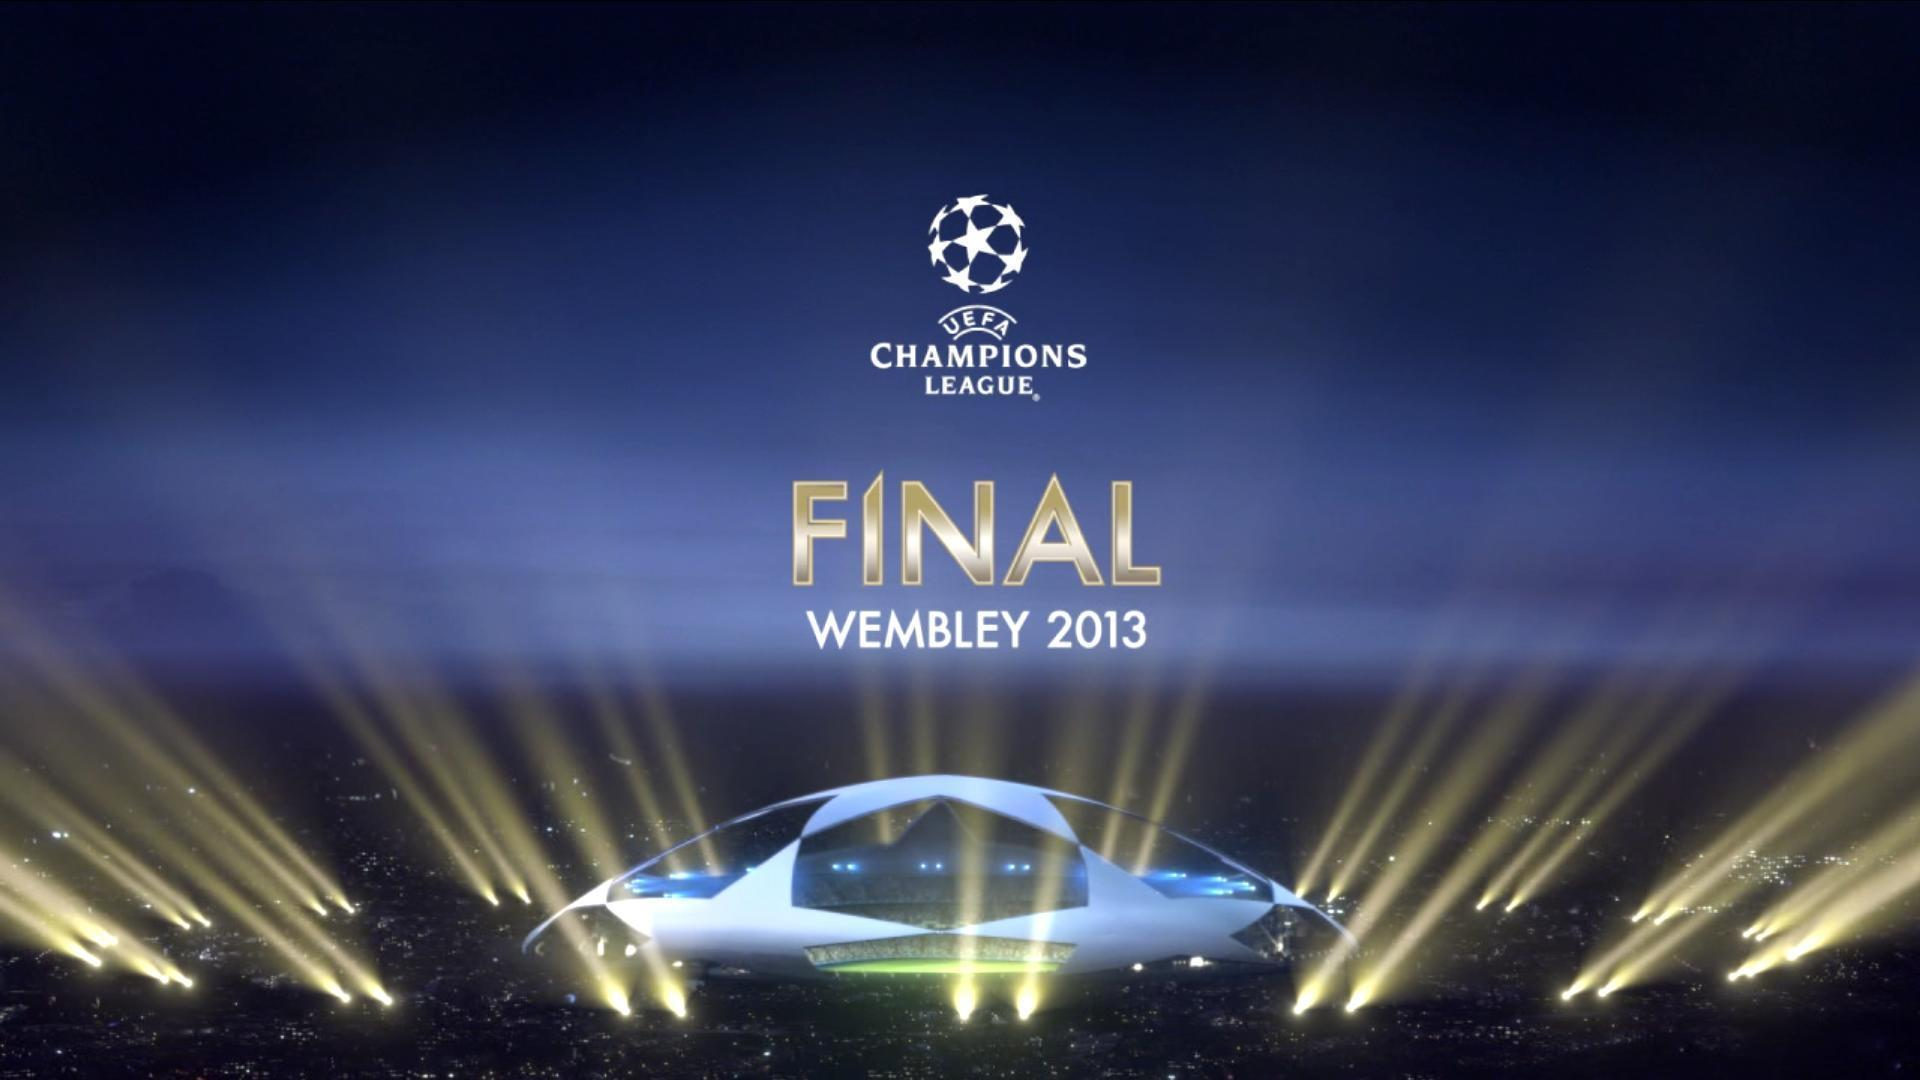 UEFA Champions League Wallpapers